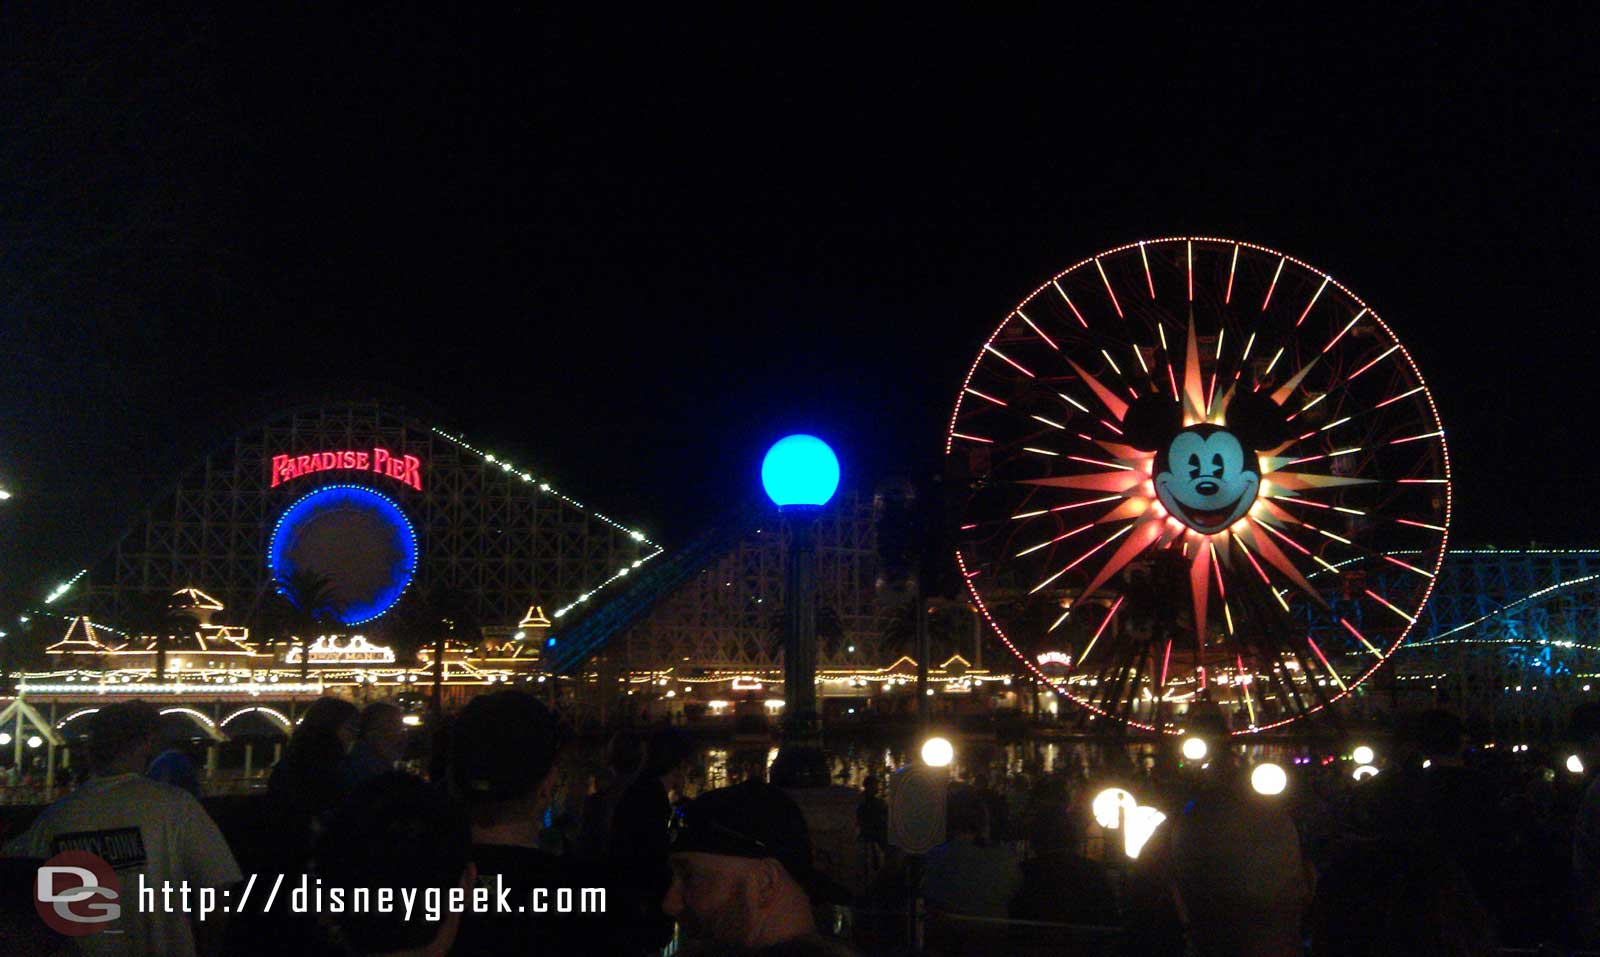 Paradise Pier, only a couple minutes until World of Color